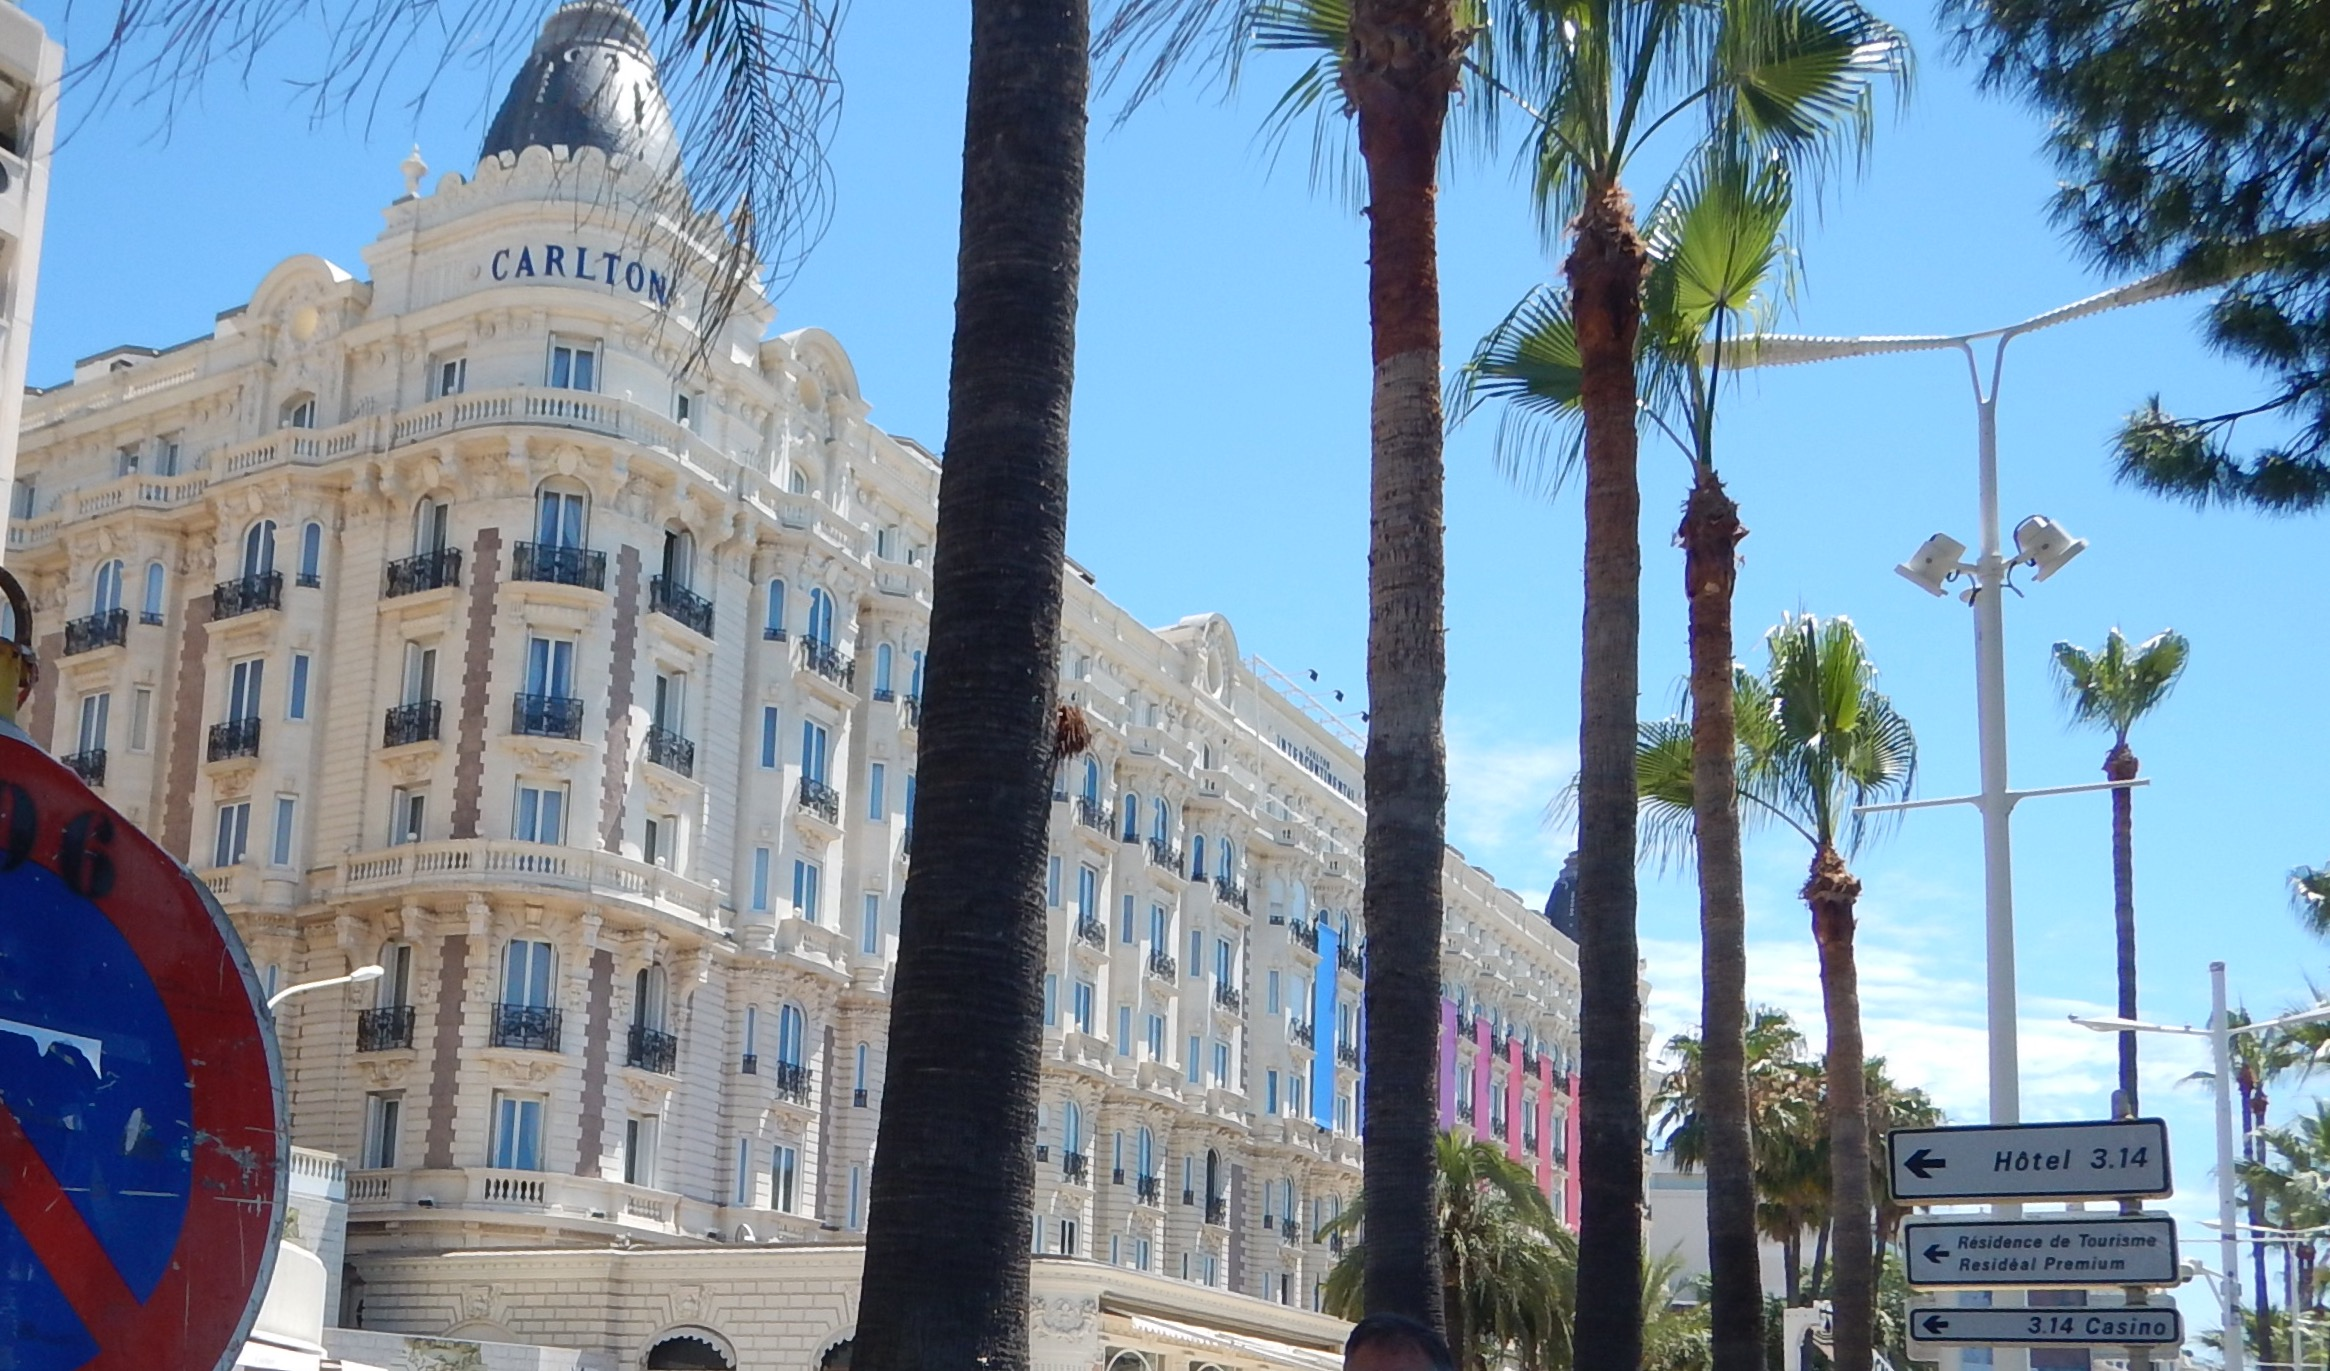 Cannes Carlton. No sign of Margaret or David. I wonder what they are doing now??